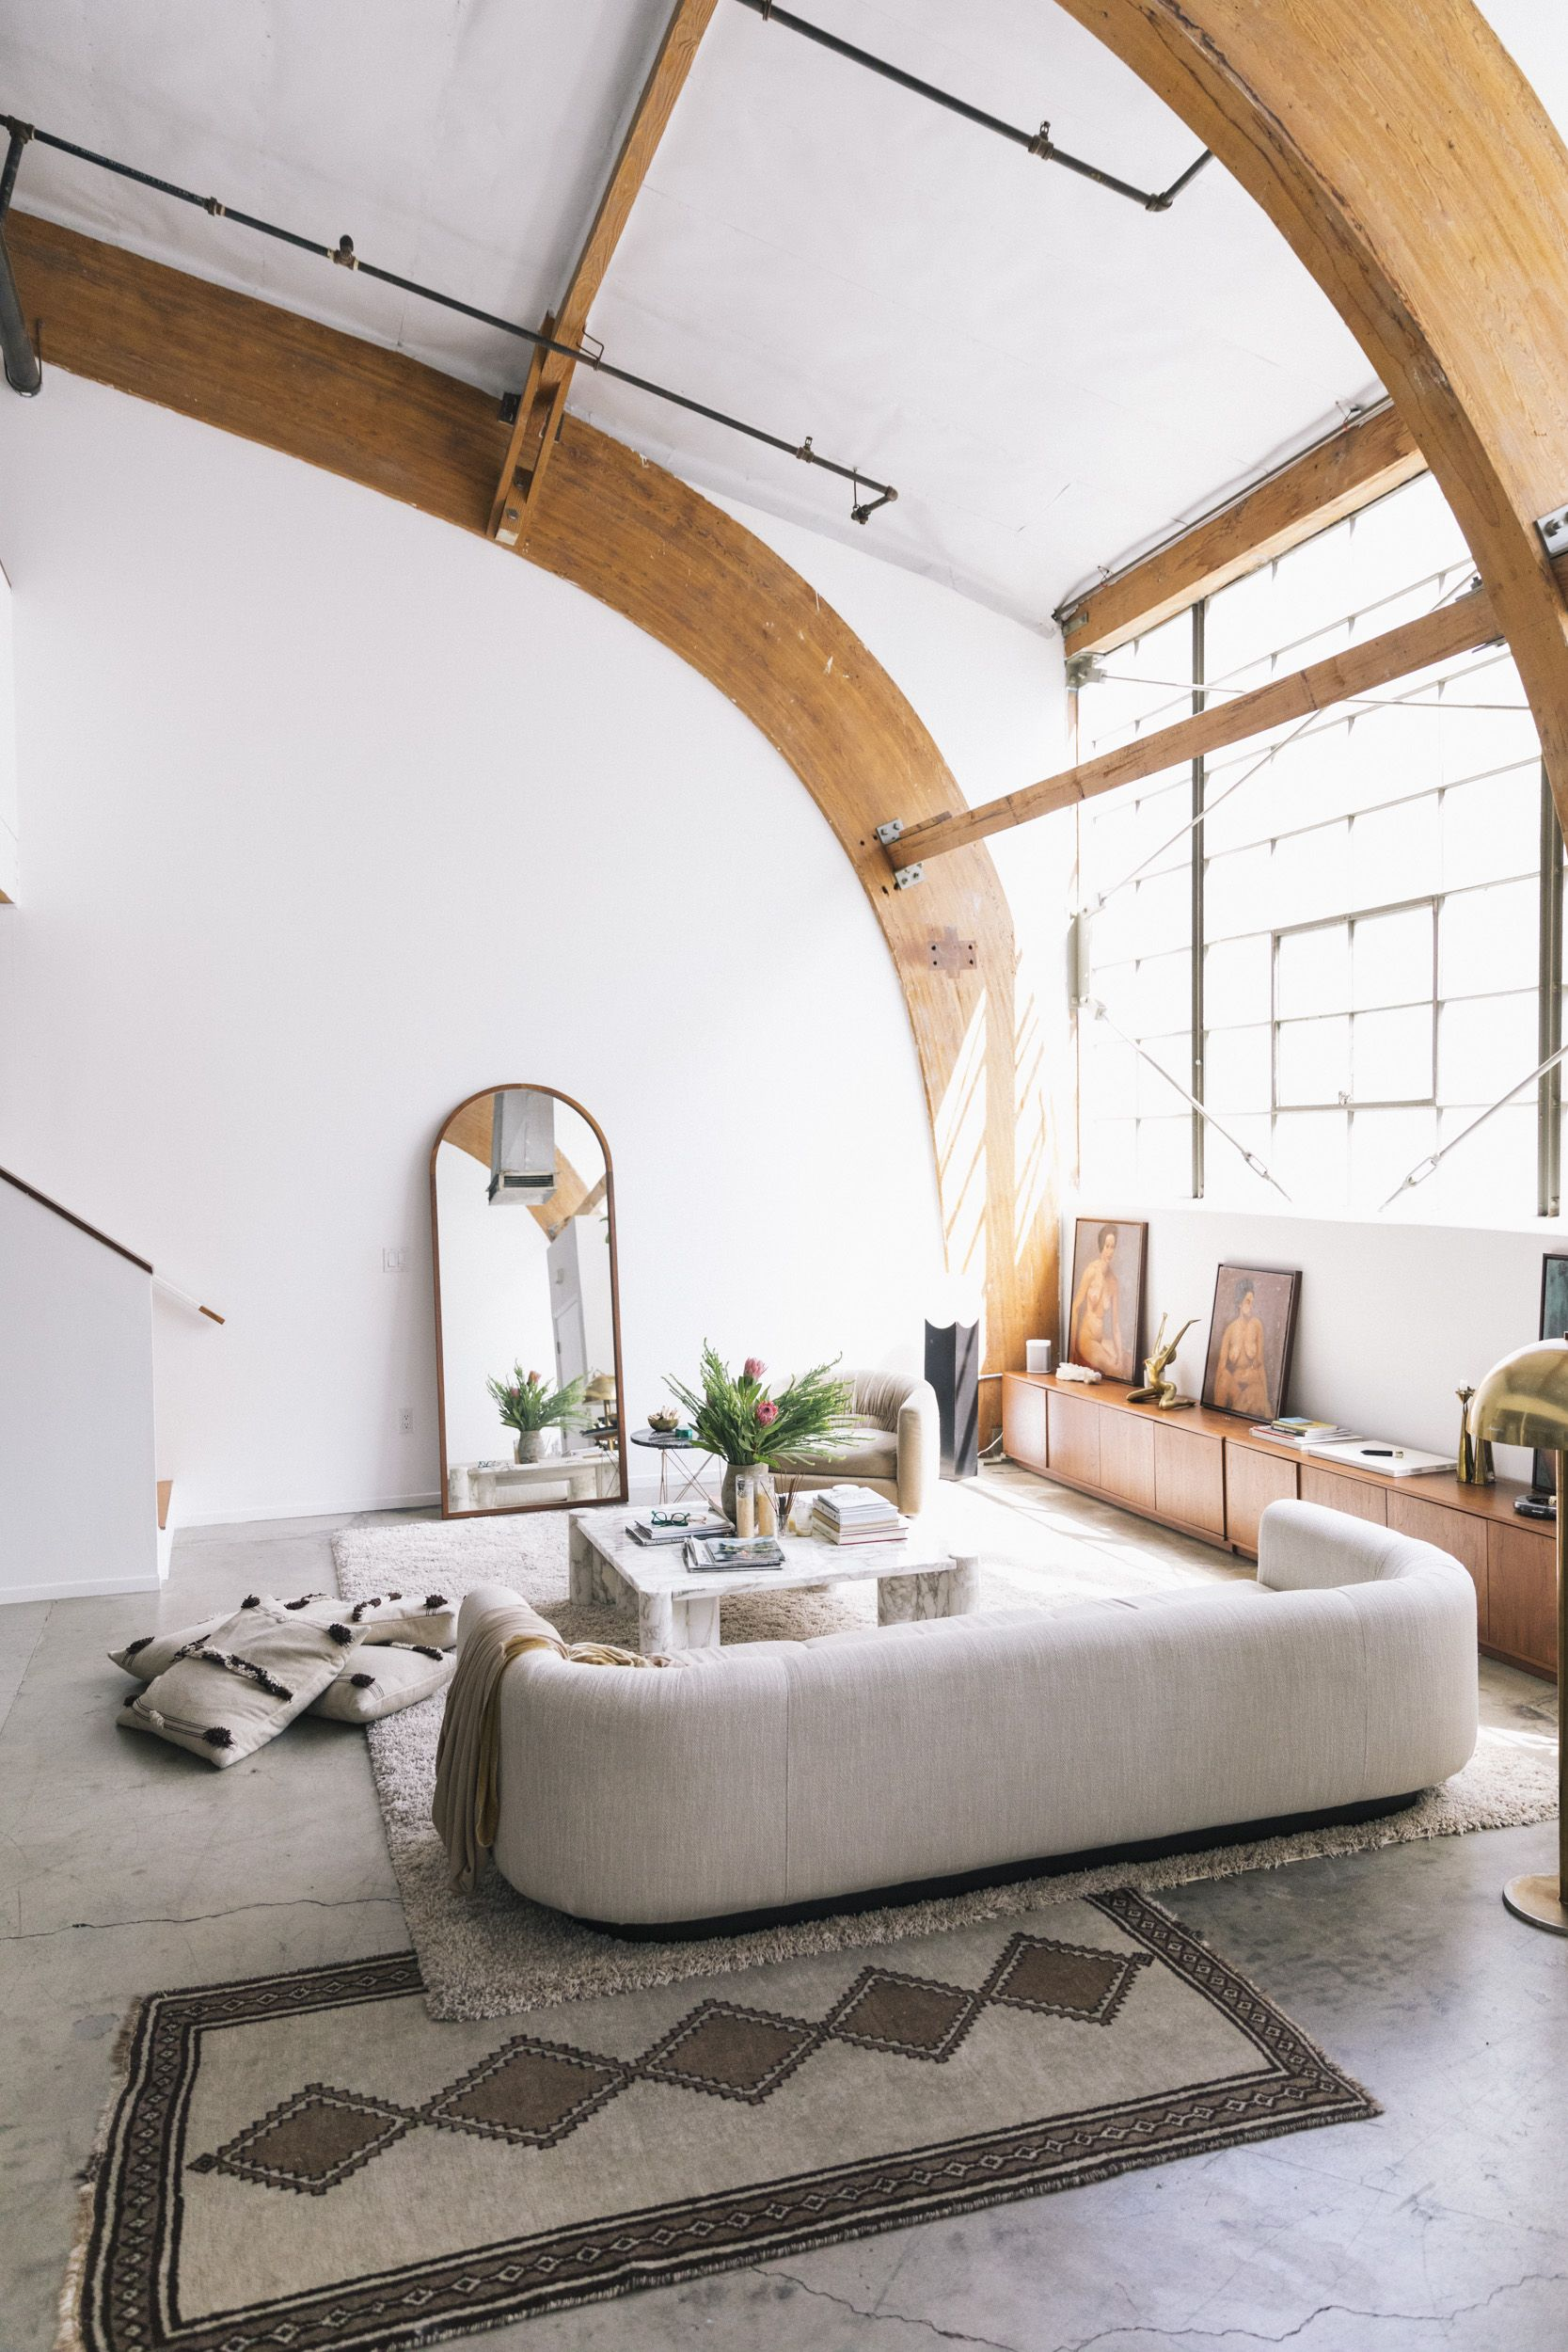 Sally Breer Interior Designer And Co Owner Of Etcetera With Her Team And Her Fiance Dan Medina At Work And At Home In Lo Home Interior Design Home And Living